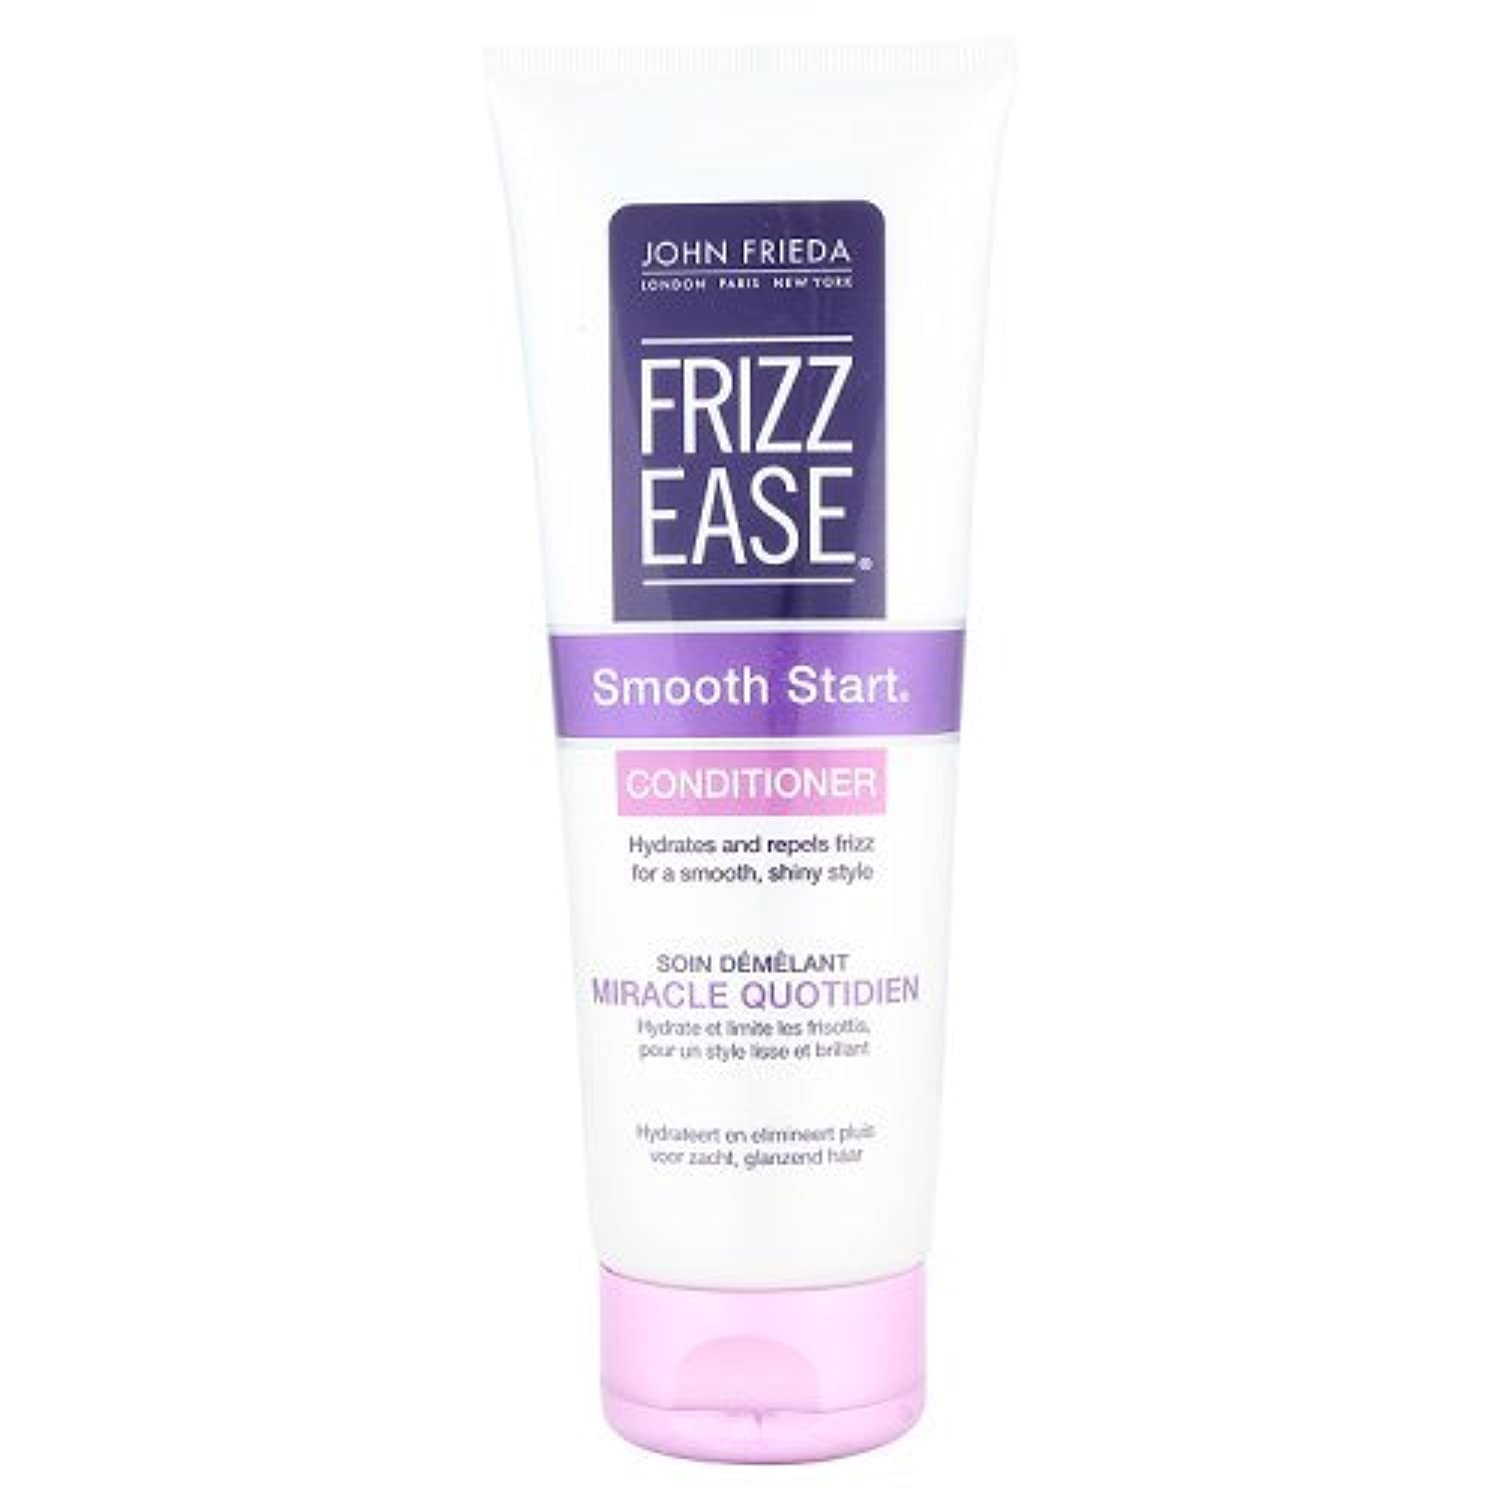 John Frieda Frizz-Ease Smooth Start Conditioner 250ml